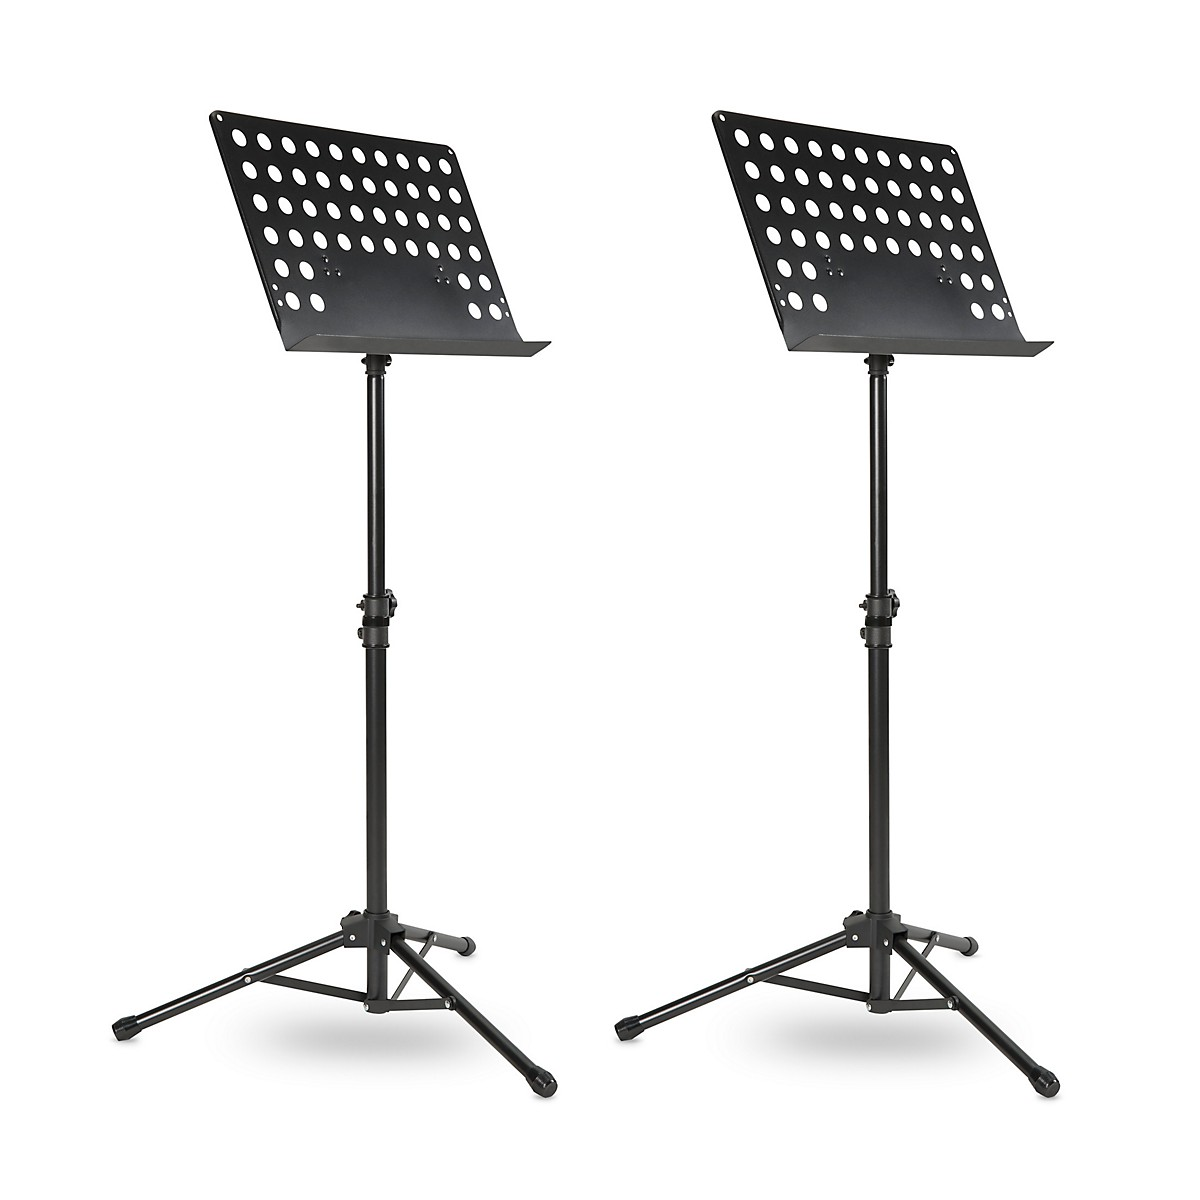 Musician's Gear Tripod Orchestral Music Stand Perforated Black - 2 Pack